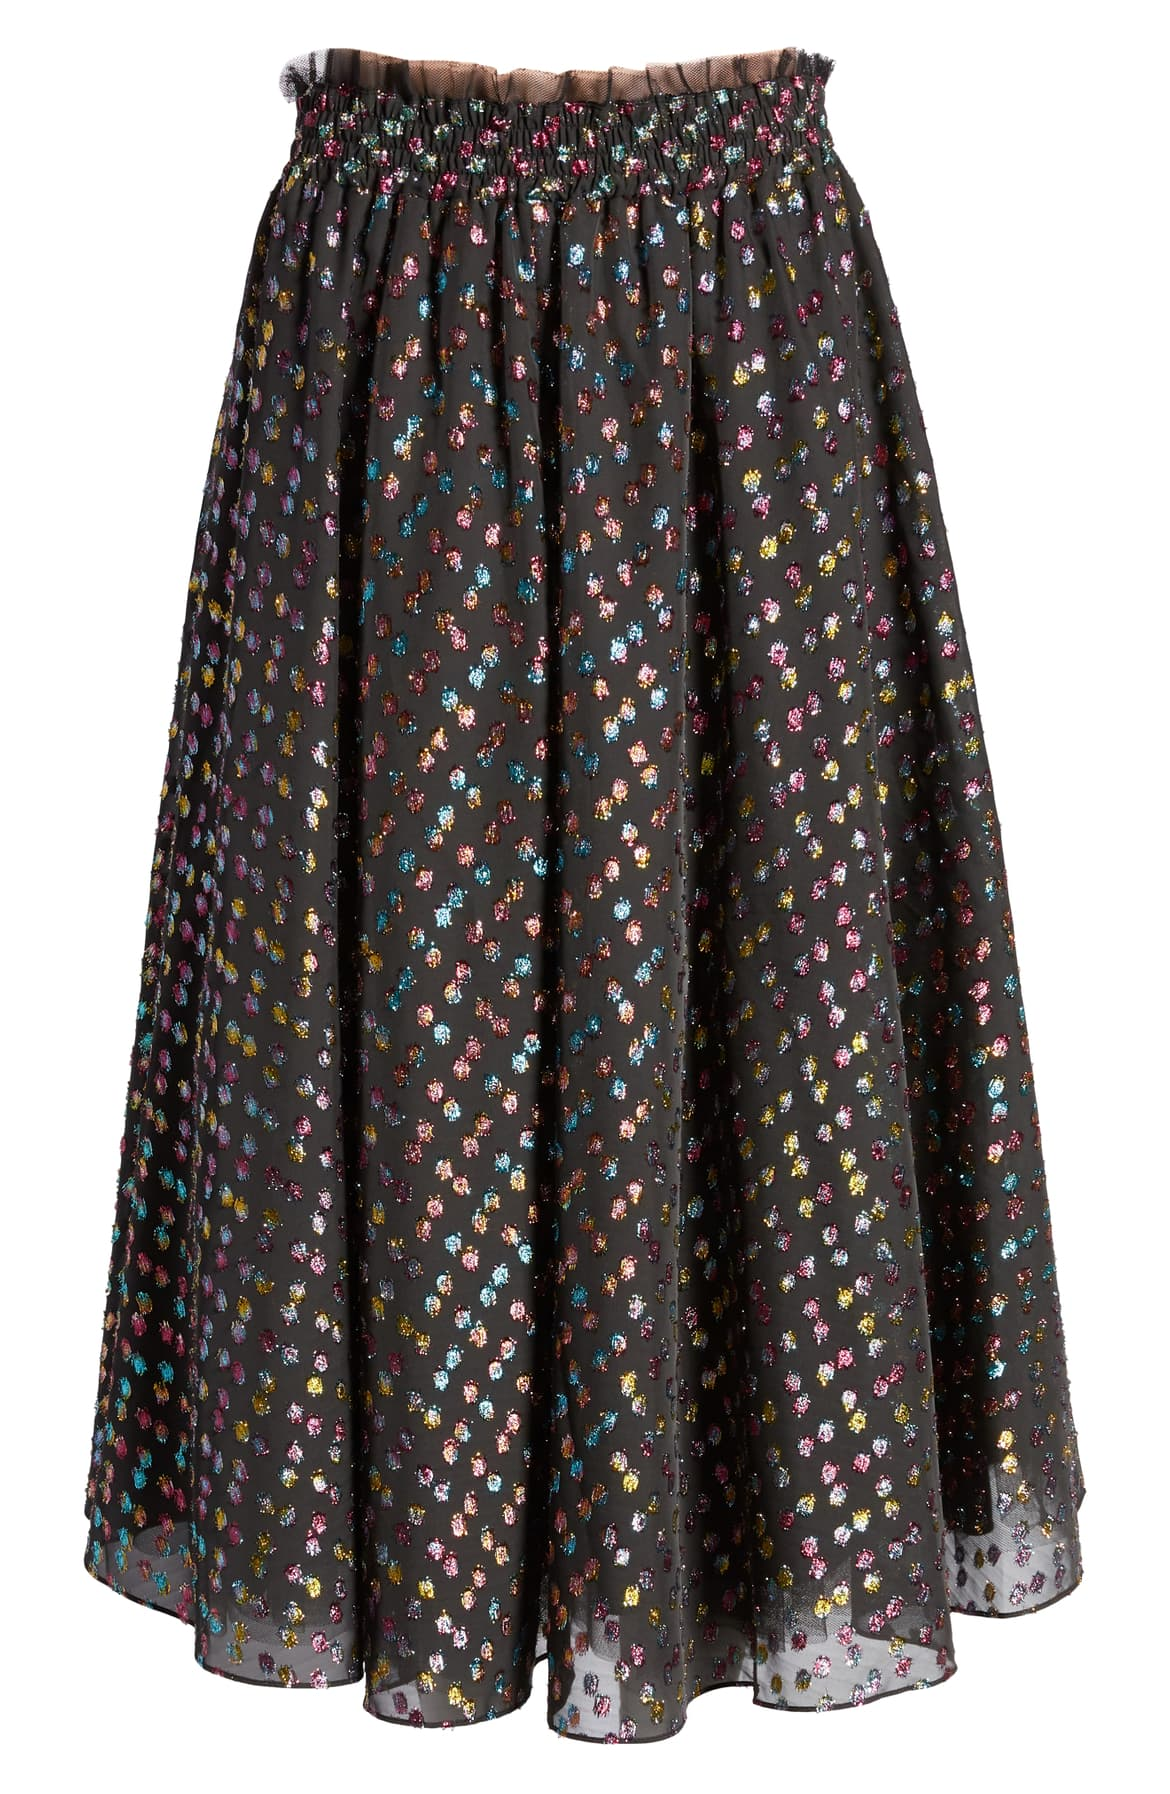 "<a  href=""https://shop.nordstrom.com/s/halogen-x-atlantic-pacific-rainbow-dot-full-skirt-nordstrom-exclusive/5356620/full?origin=keywordsearch-personalizedsort&breadcrumb=Home%2FAll%20Results&color=black-%20rainbow%20clip%20dot"" target=""_blank"" title=""https://shop.nordstrom.com/s/halogen-x-atlantic-pacific-rainbow-dot-full-skirt-nordstrom-exclusive/5356620/full?origin=keywordsearch-personalizedsort&breadcrumb=Home%2FAll%20Results&color=black-%20rainbow%20clip%20dot"">Halogen x Atlantic Pacific Rainbow Dot Full Skirt - $169</a>. From cozy to gold hued to tailored, Nordstrom has the hottest trends for getting glam this holiday season! (Credit: Nordstrom)"